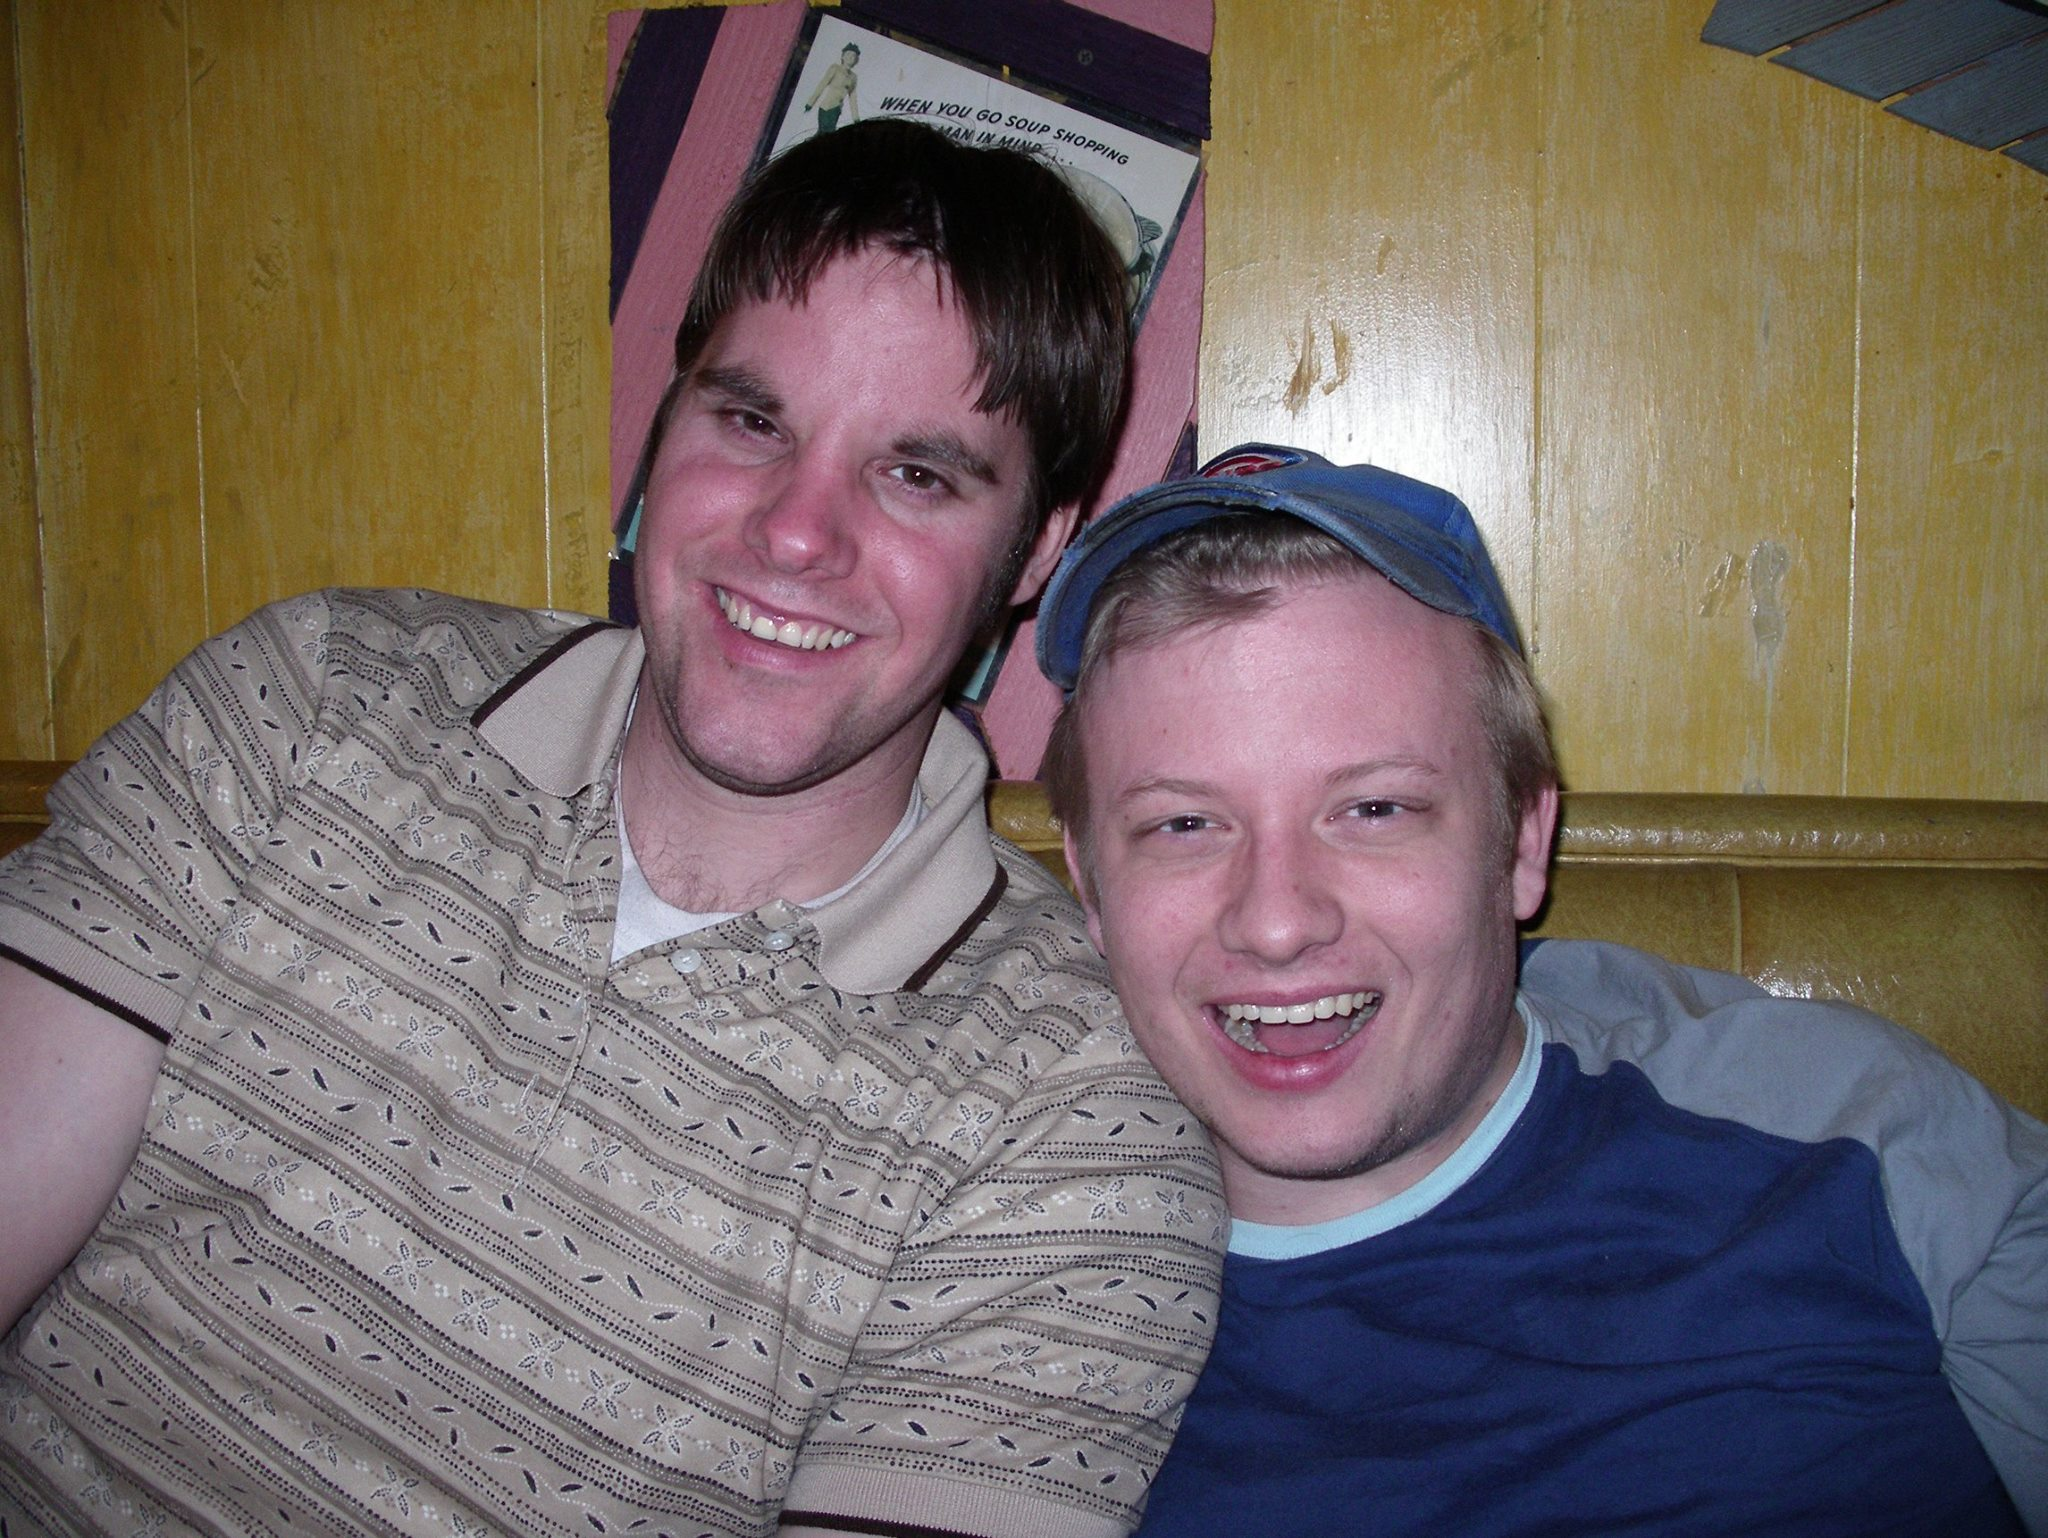 Mike and I in a booth at the Pick Me Up Cafe in Chicago. Photo by Steven Townshed, with whom we were discussing art, women, and... that was probably it.